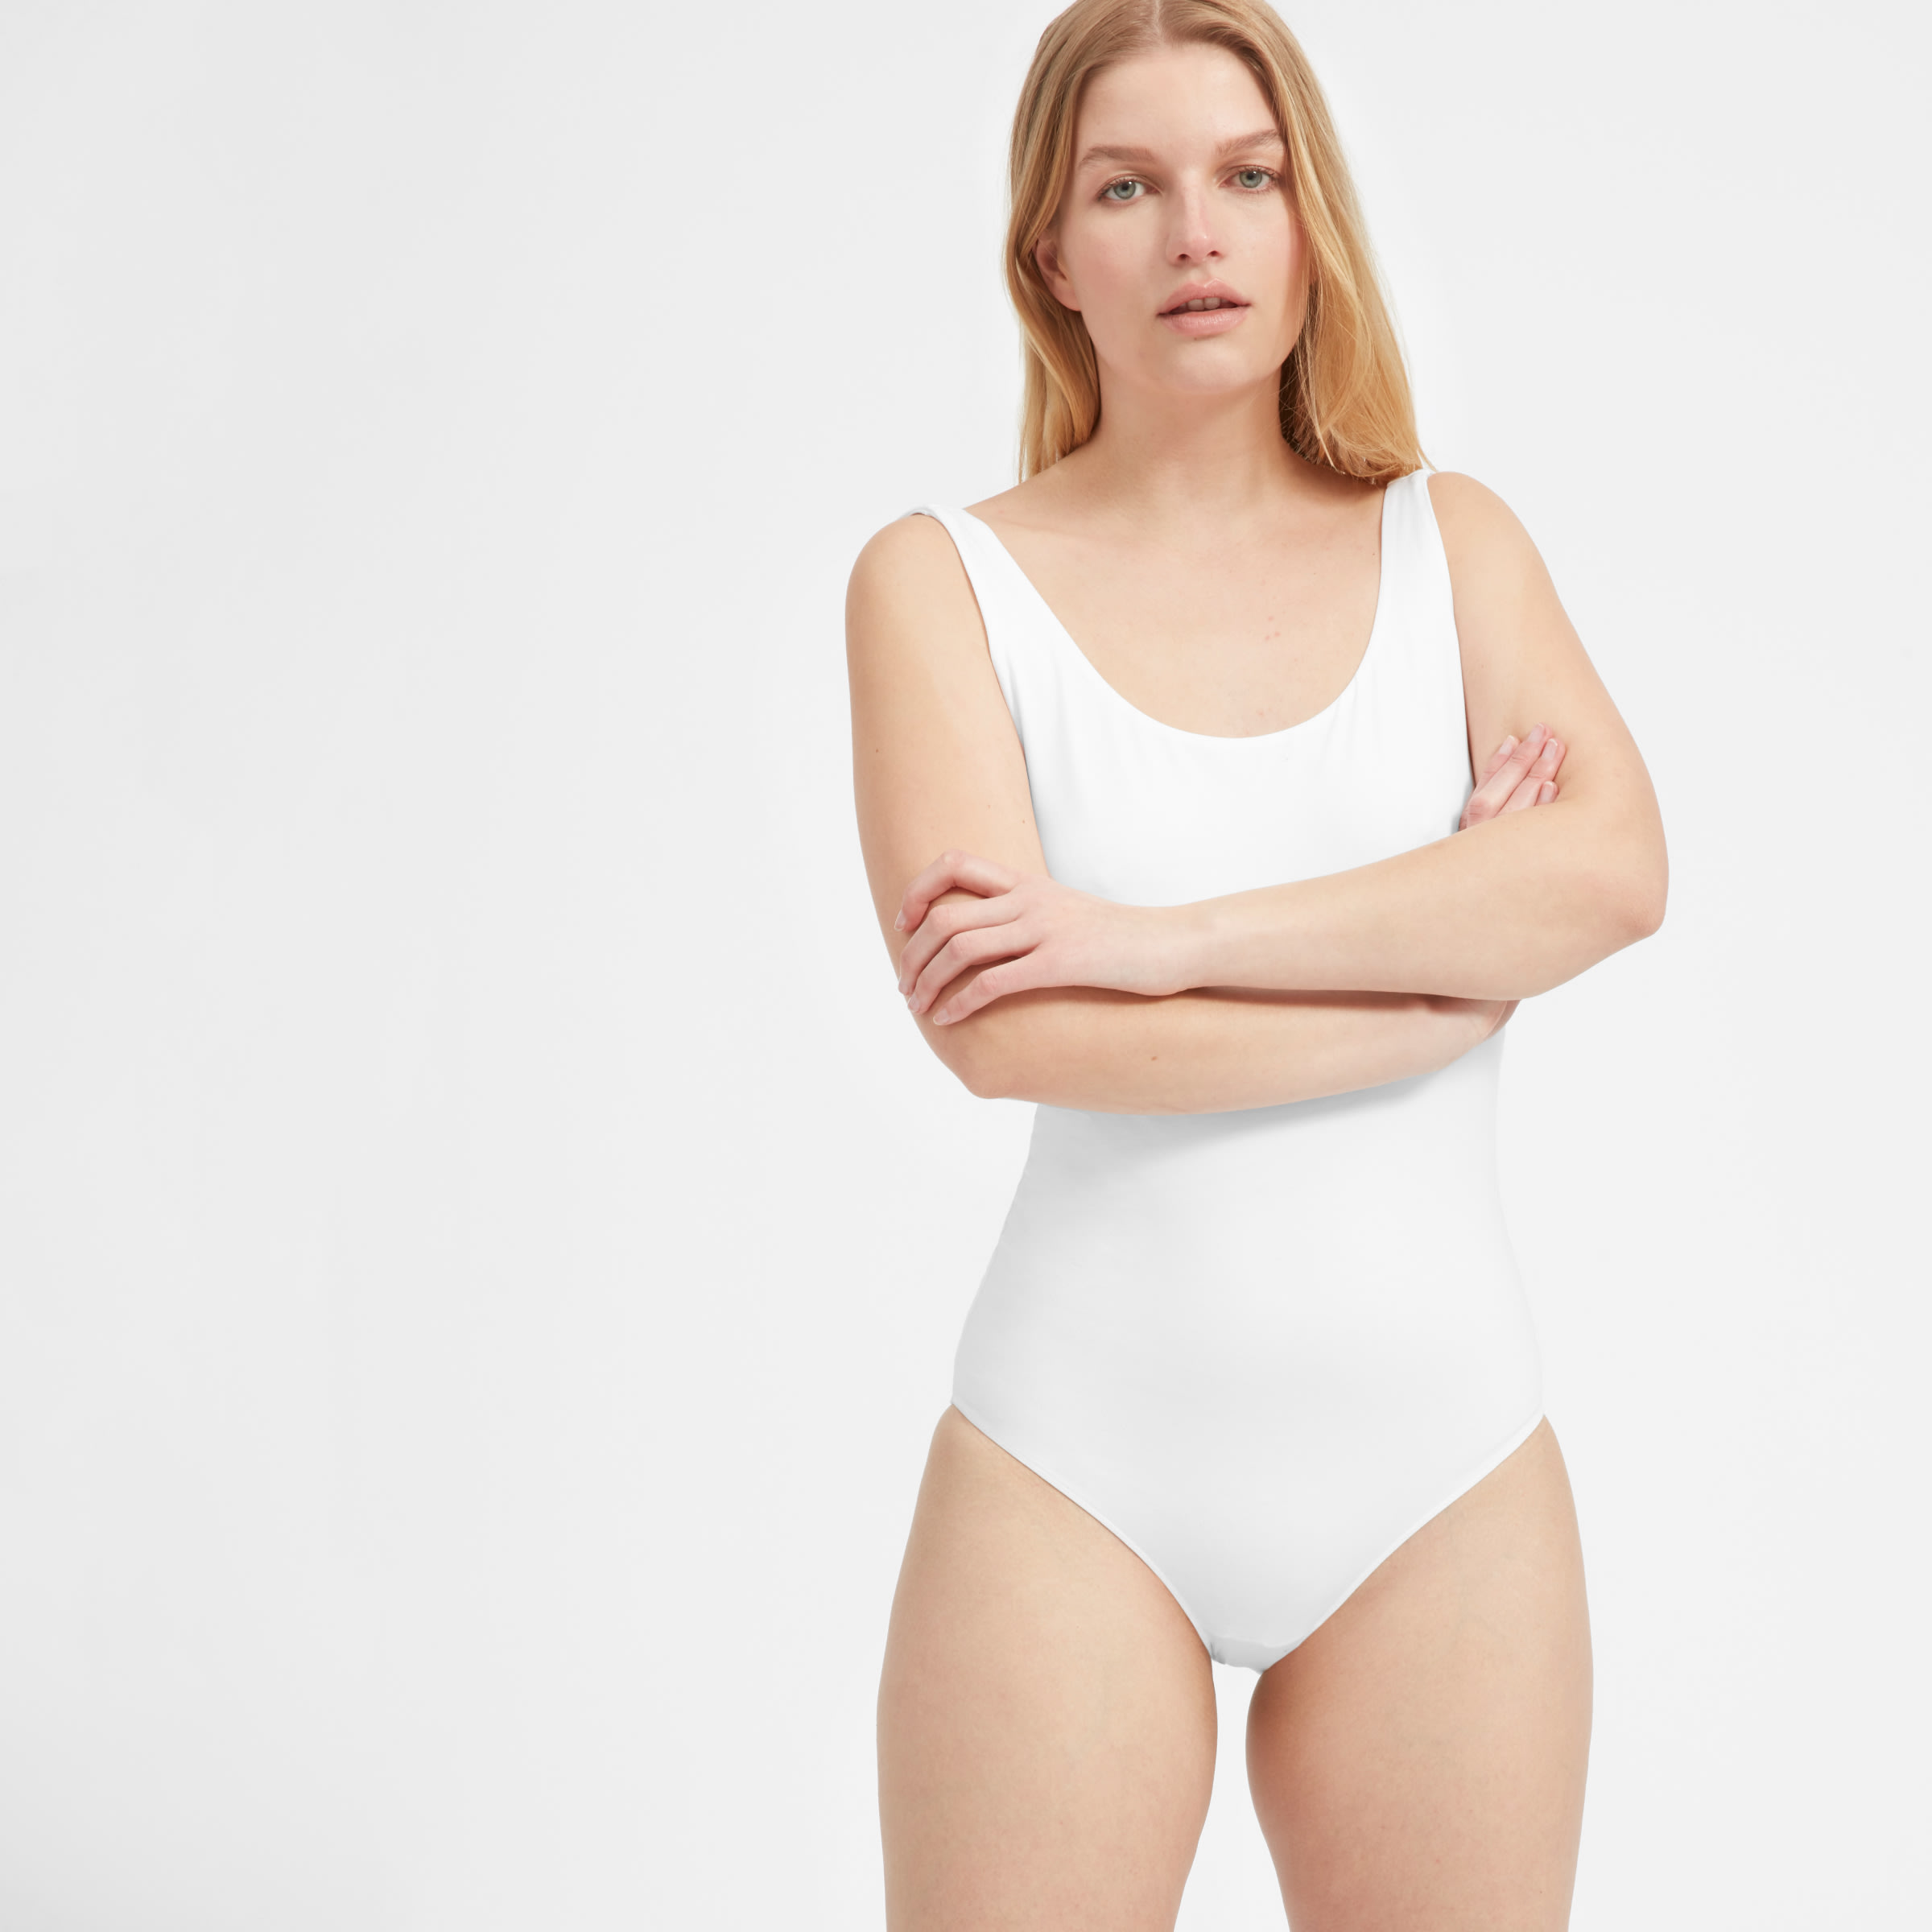 """The Bodysuit $30 - The perfect solution to """"why won't my shirt stay tucked in????"""""""